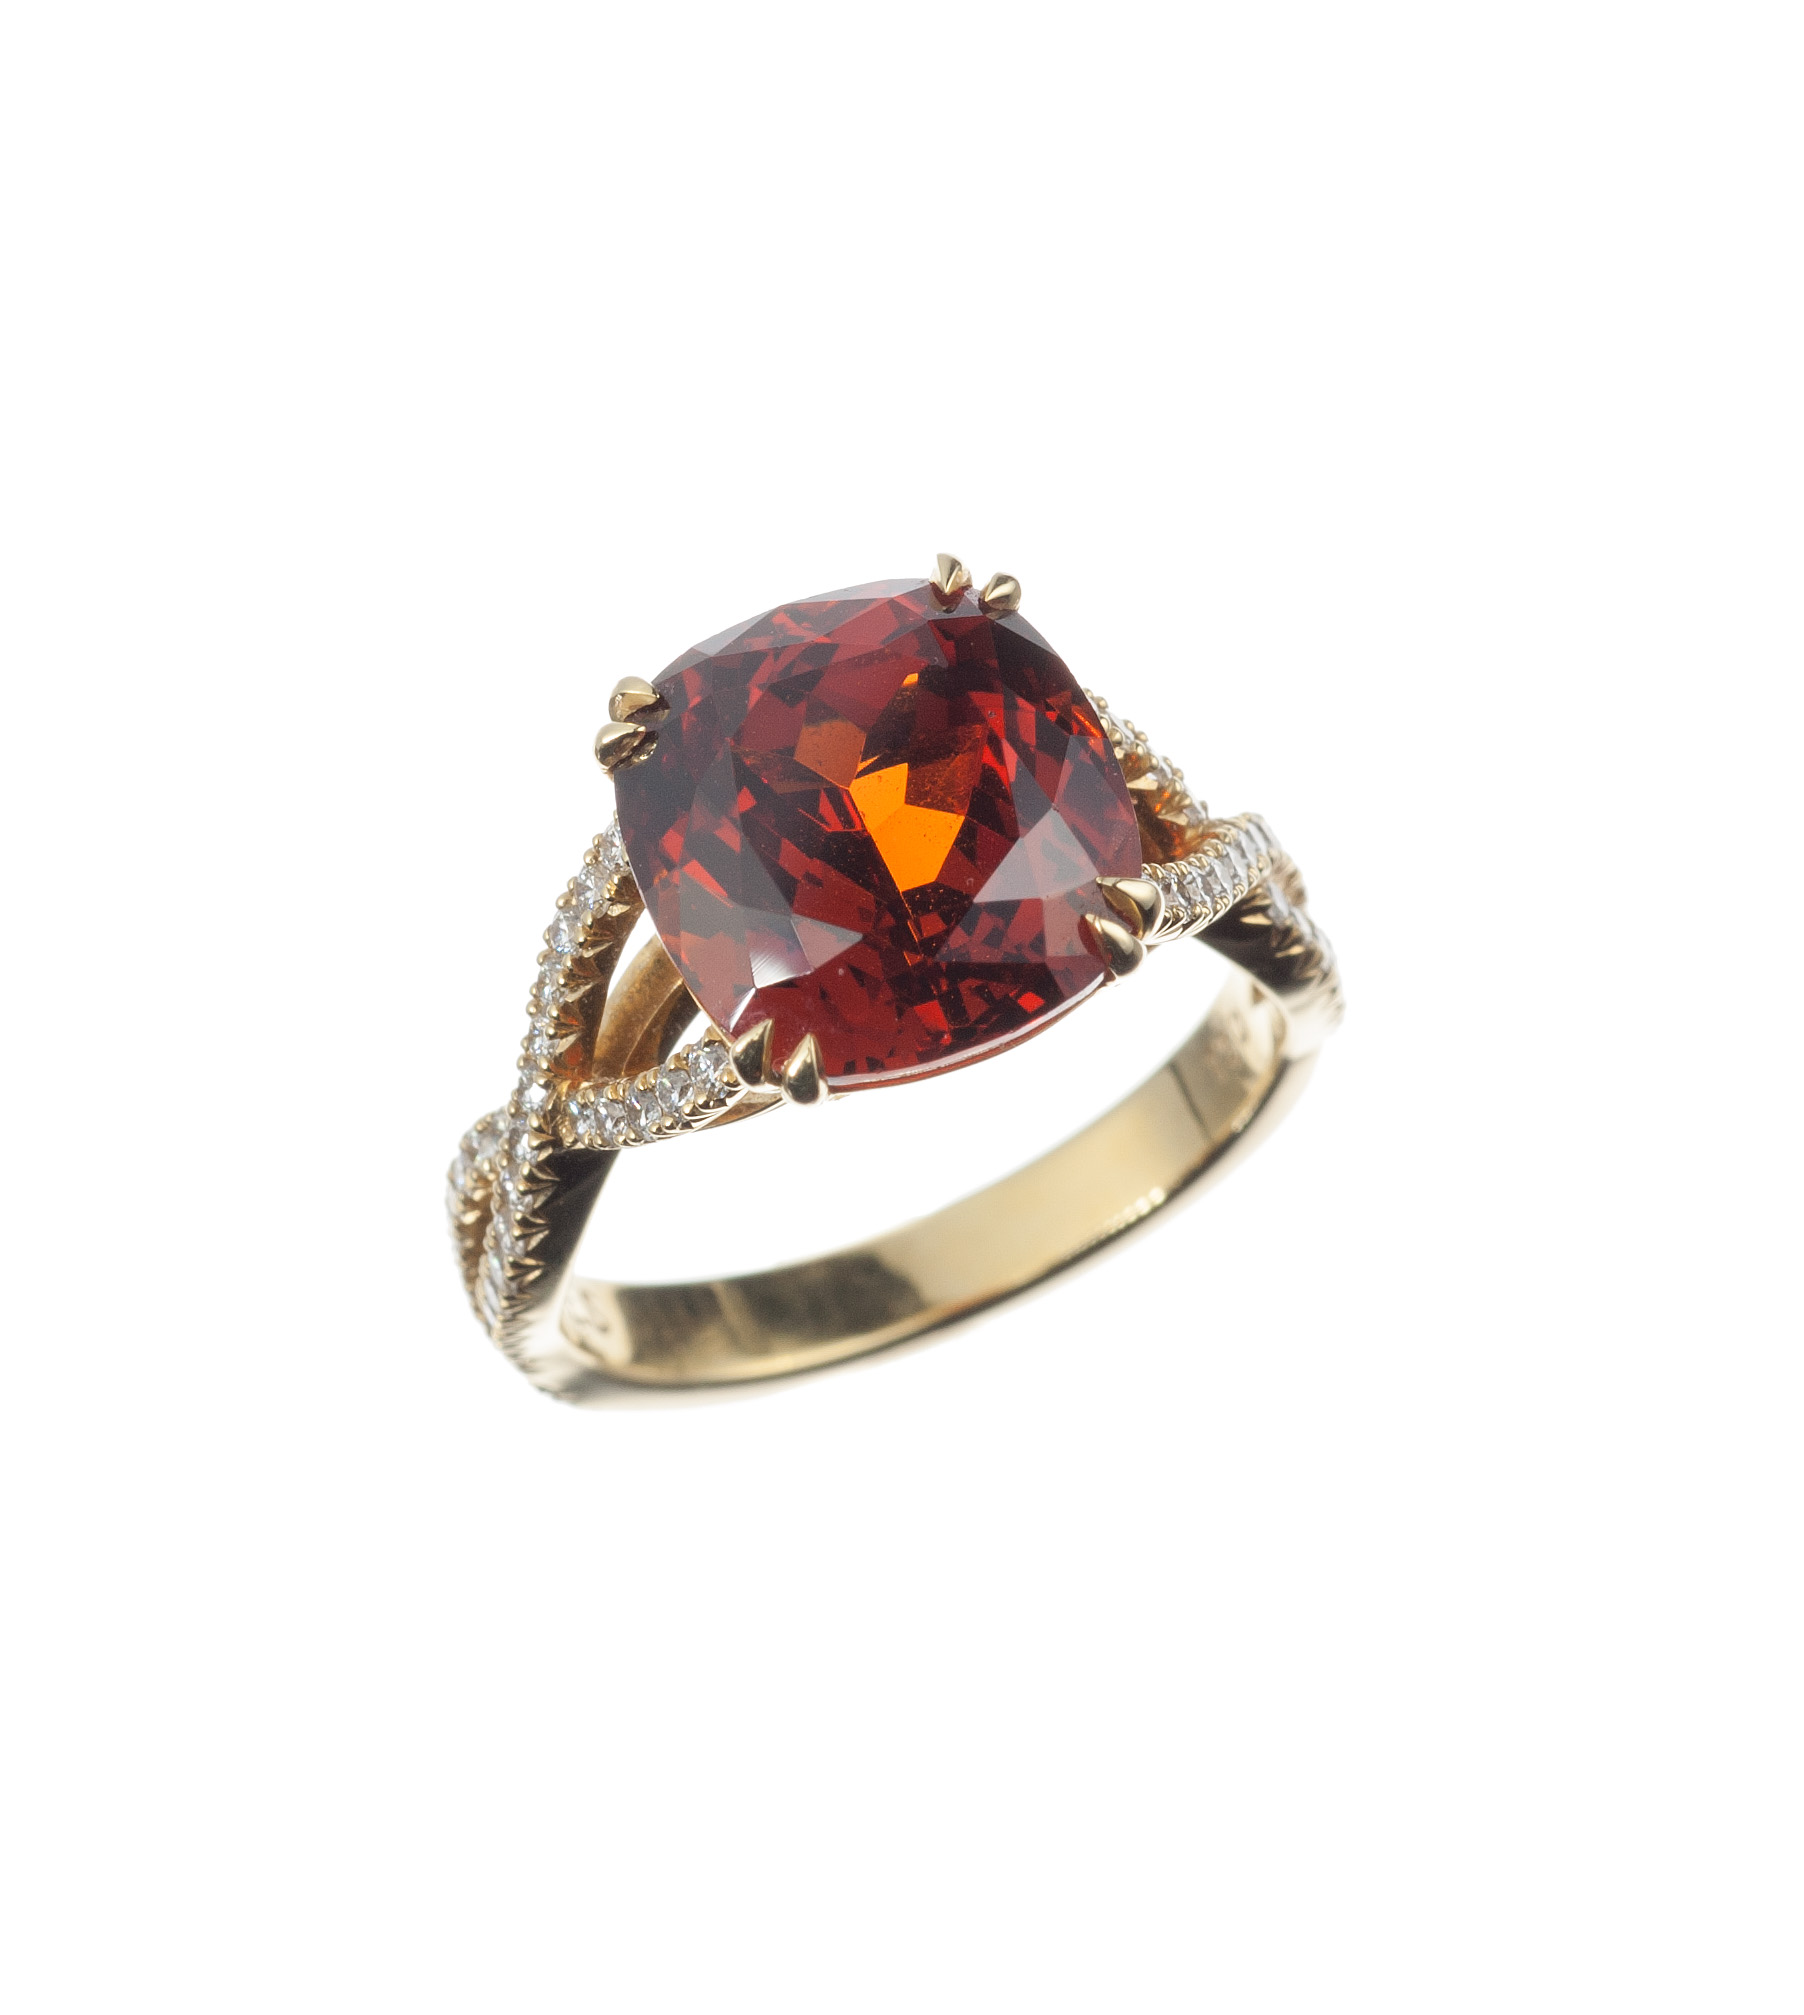 Spessartite garnet and diamond ring in 18-karat yellow gold